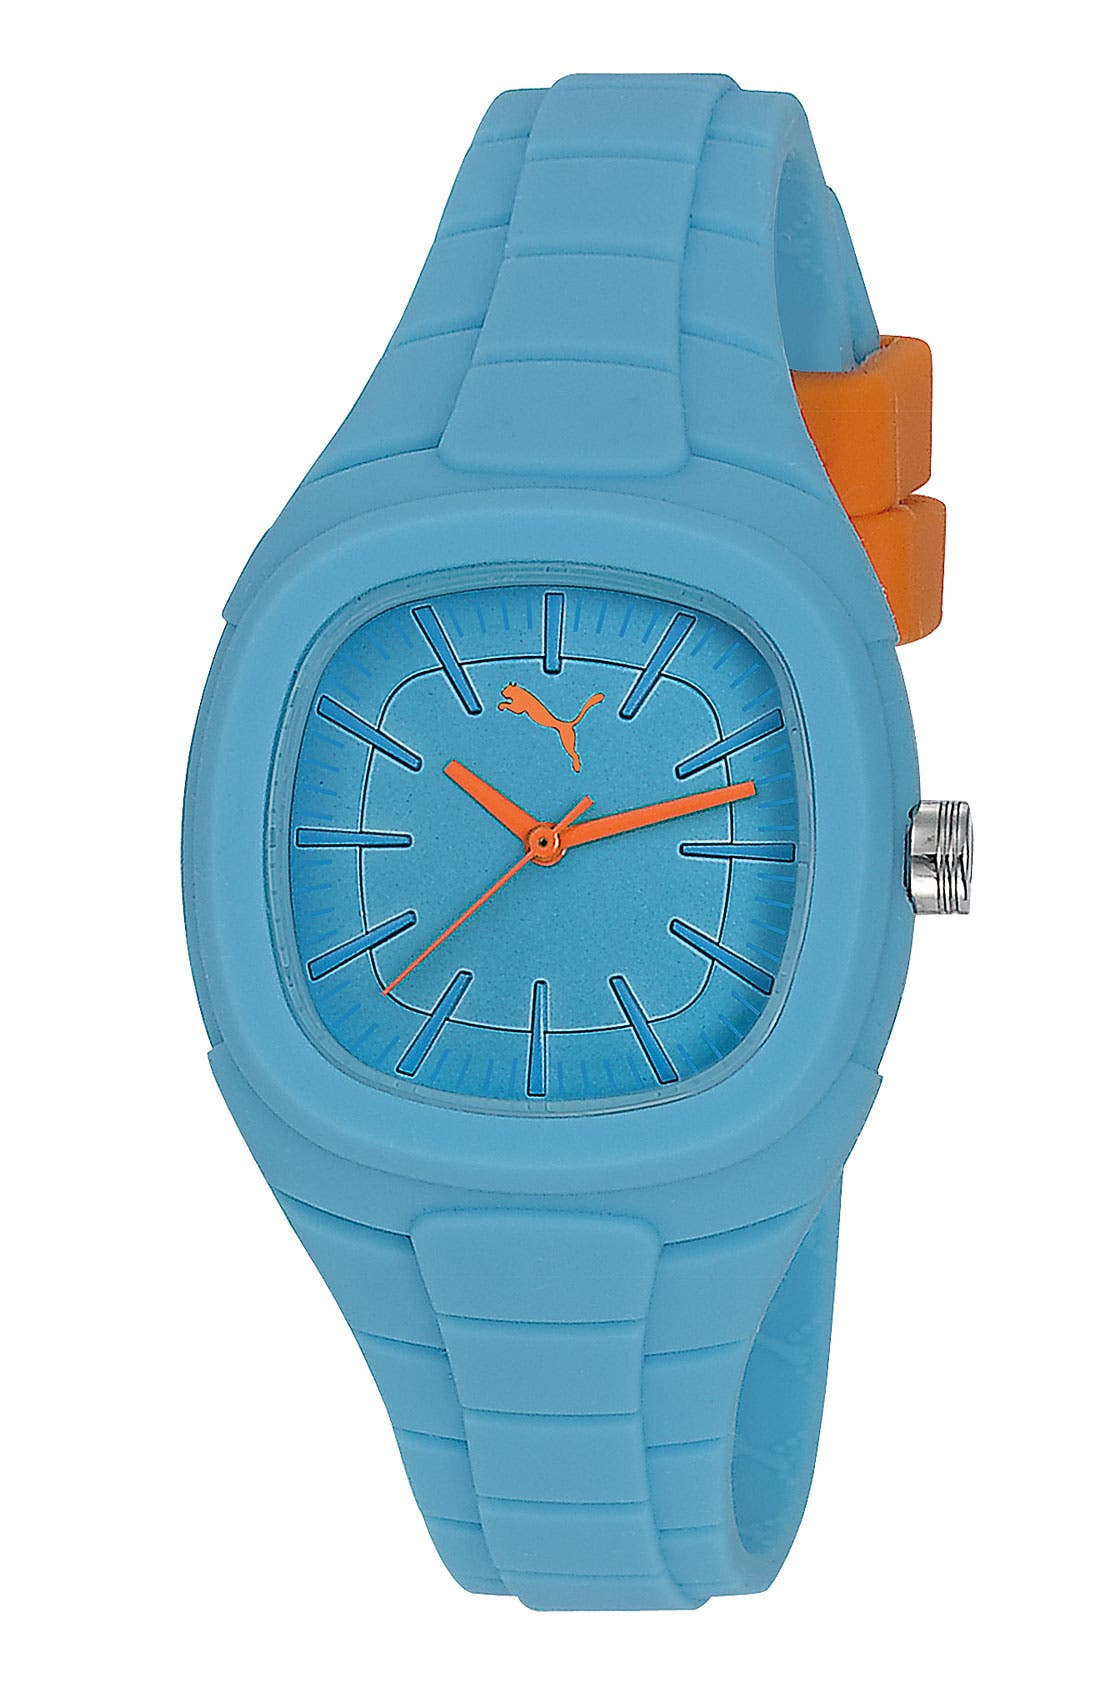 Main Image - PUMA 'Bubblegum - Small' Silicone Watch, 32mm x 36mm